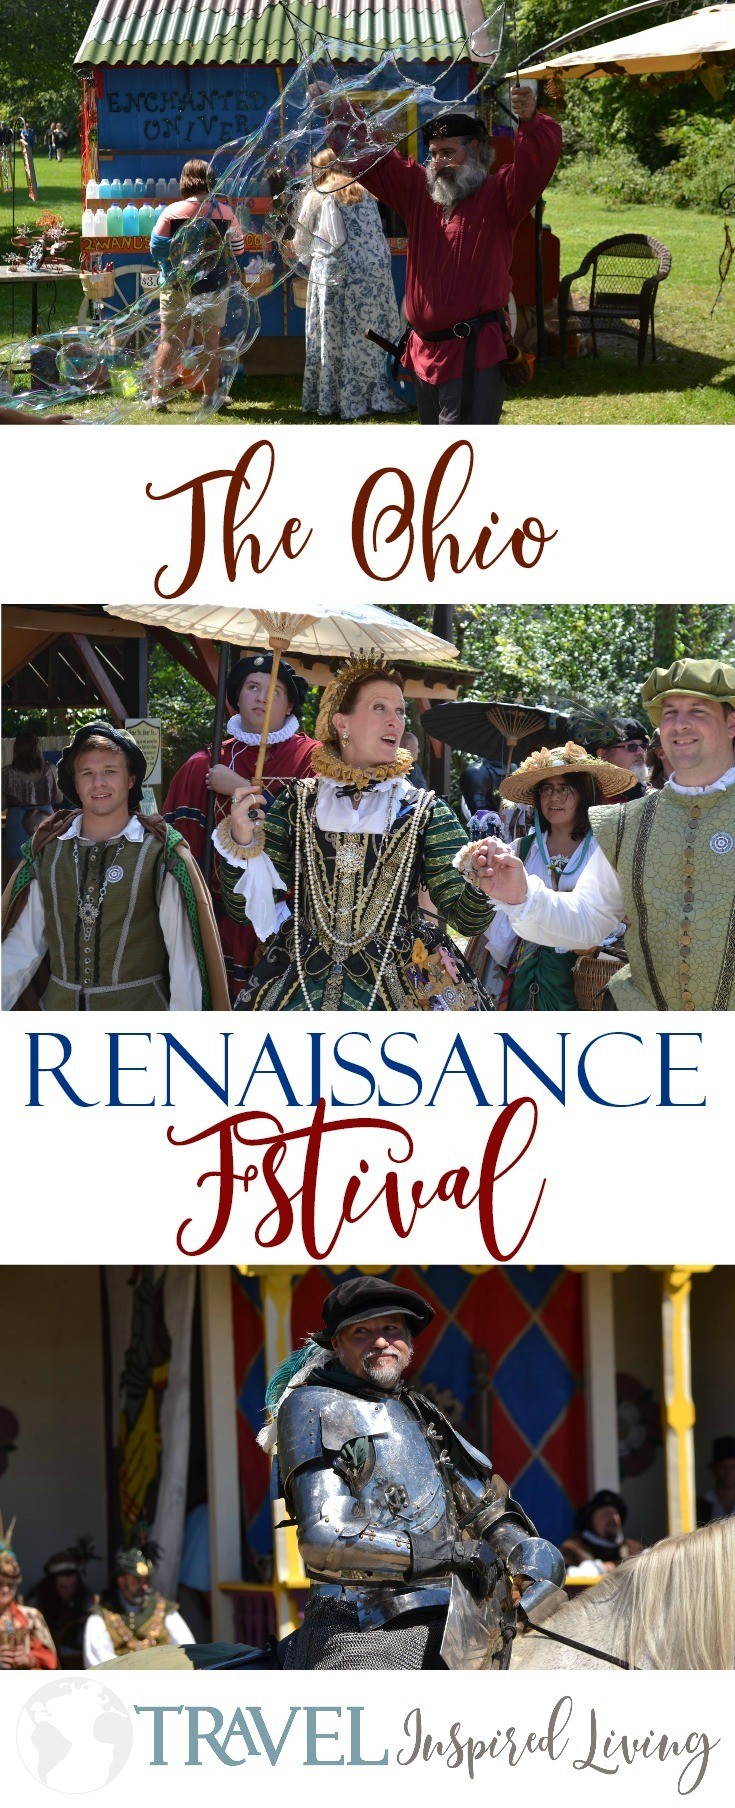 The Ohio Renaissance Festival in Waynesville